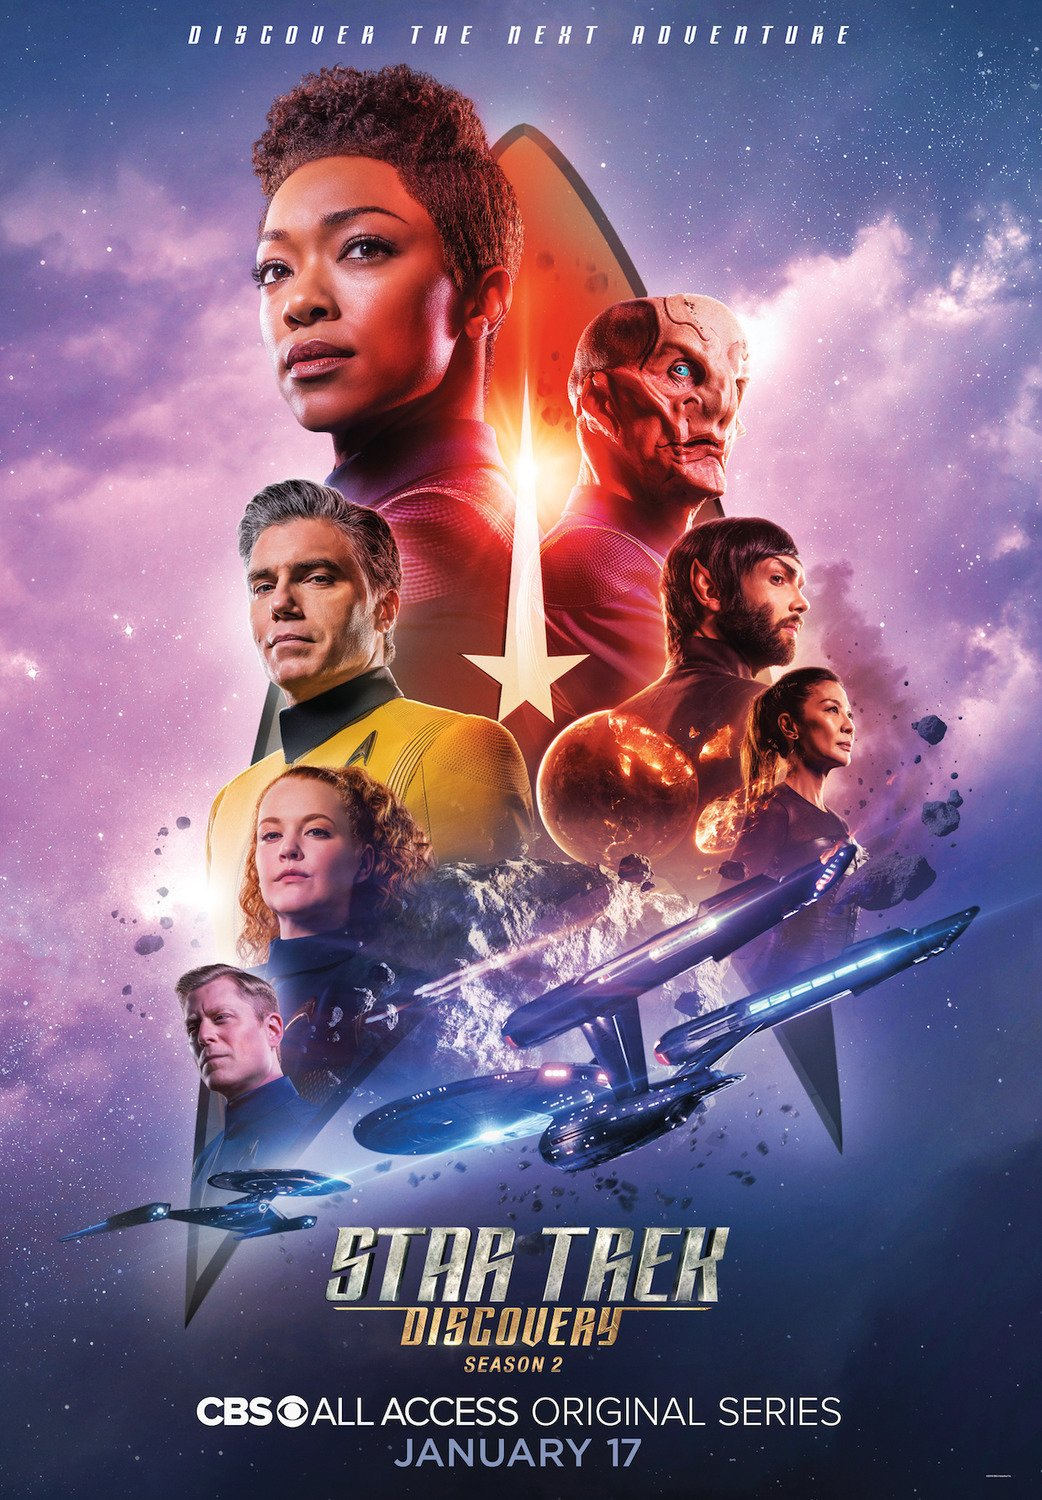 Star Trek Discovery (2019) Season 2 EP.2